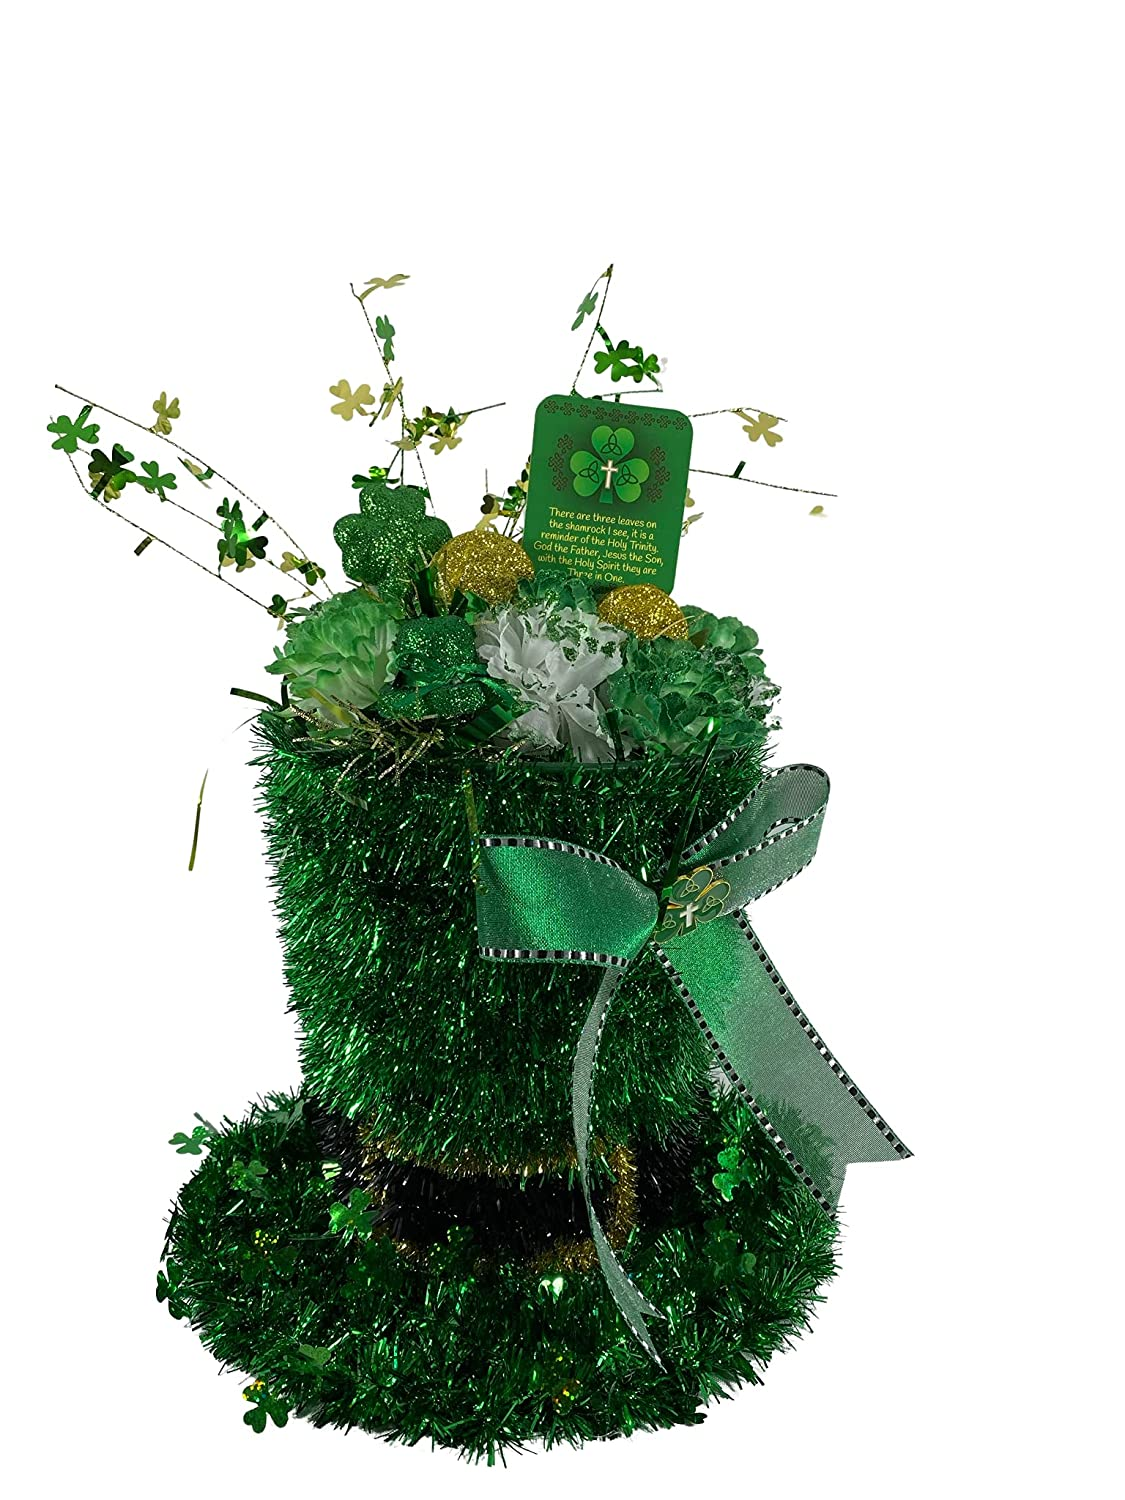 AGD St Patrick's Decor It is very popular - Large Green Lighted Credence Tophat Cente Tinsel